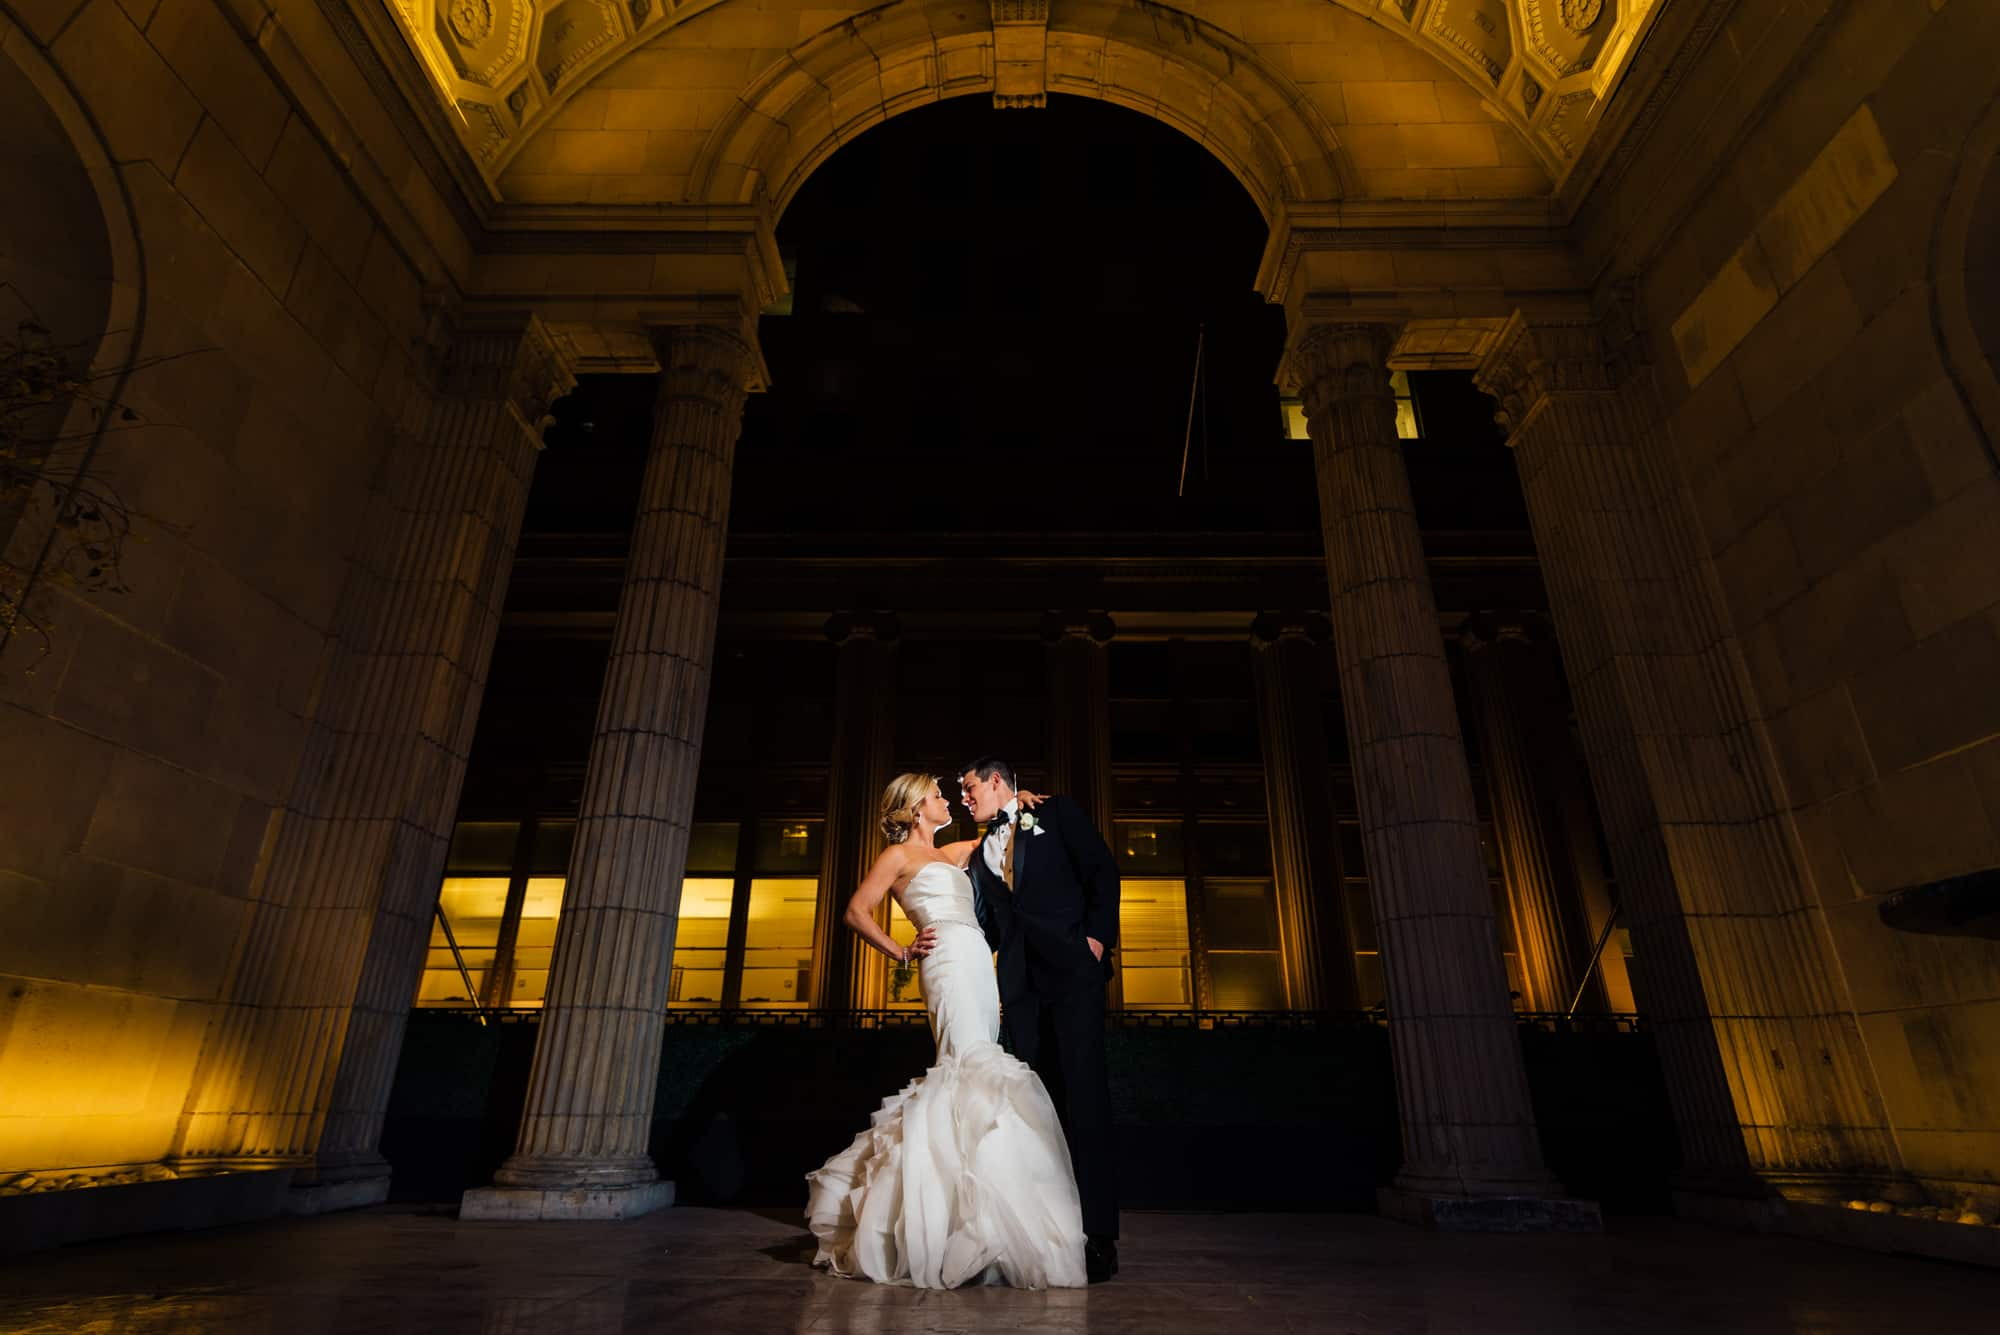 Romantic night image of bride and groom on the terrace of the Ballroom at the Ben